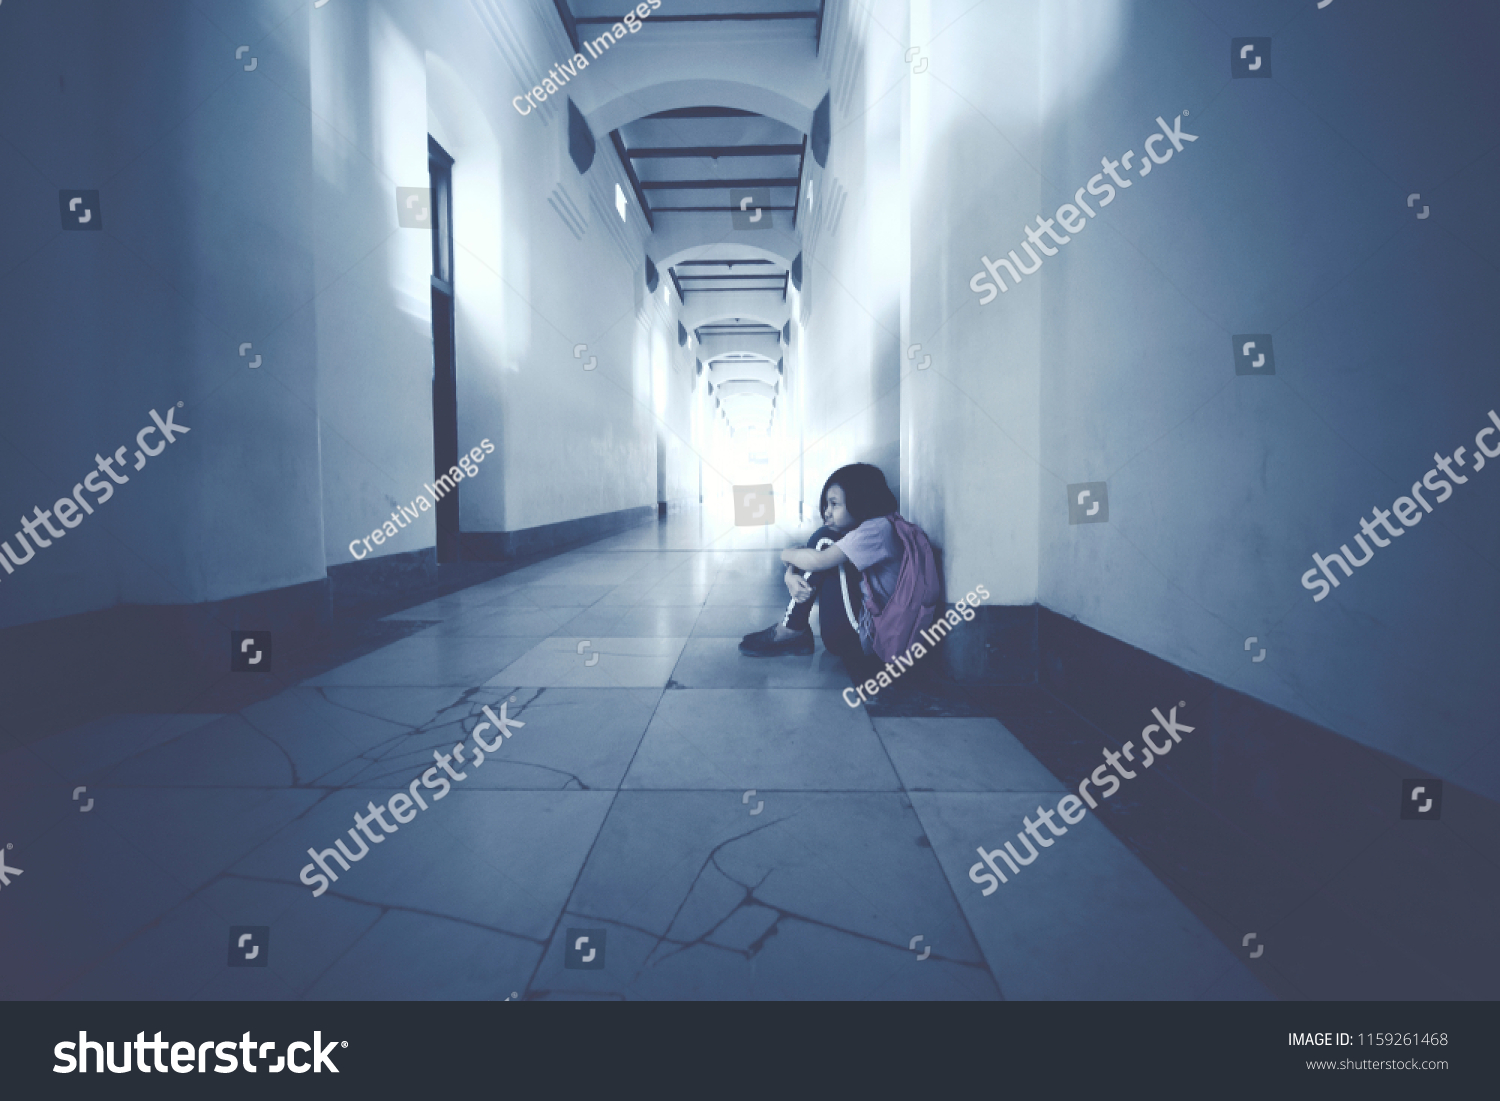 Picture of Asian schoolgirl looks depressed while sitting alone in the school corridor #1159261468